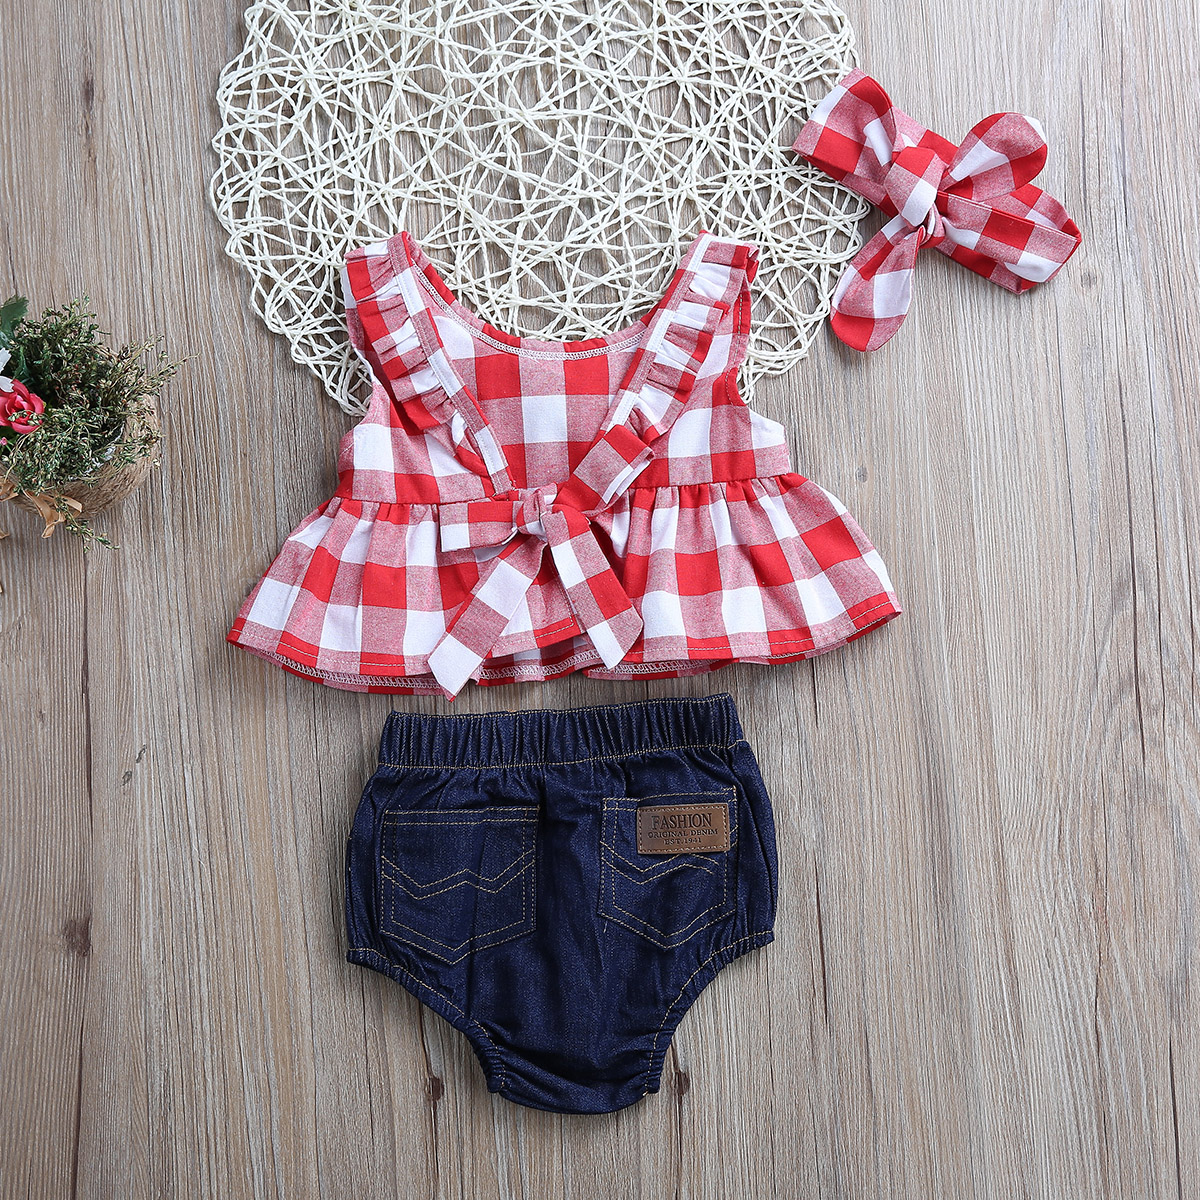 Tops-Sleeveless-Plaid-T-Shirts-Jeans-Shorts-Headband-Kids-Clothing-Outfits-Infant-Kids-Baby-Girls-Clothes-Sets-Outfit-Sleeveless-5